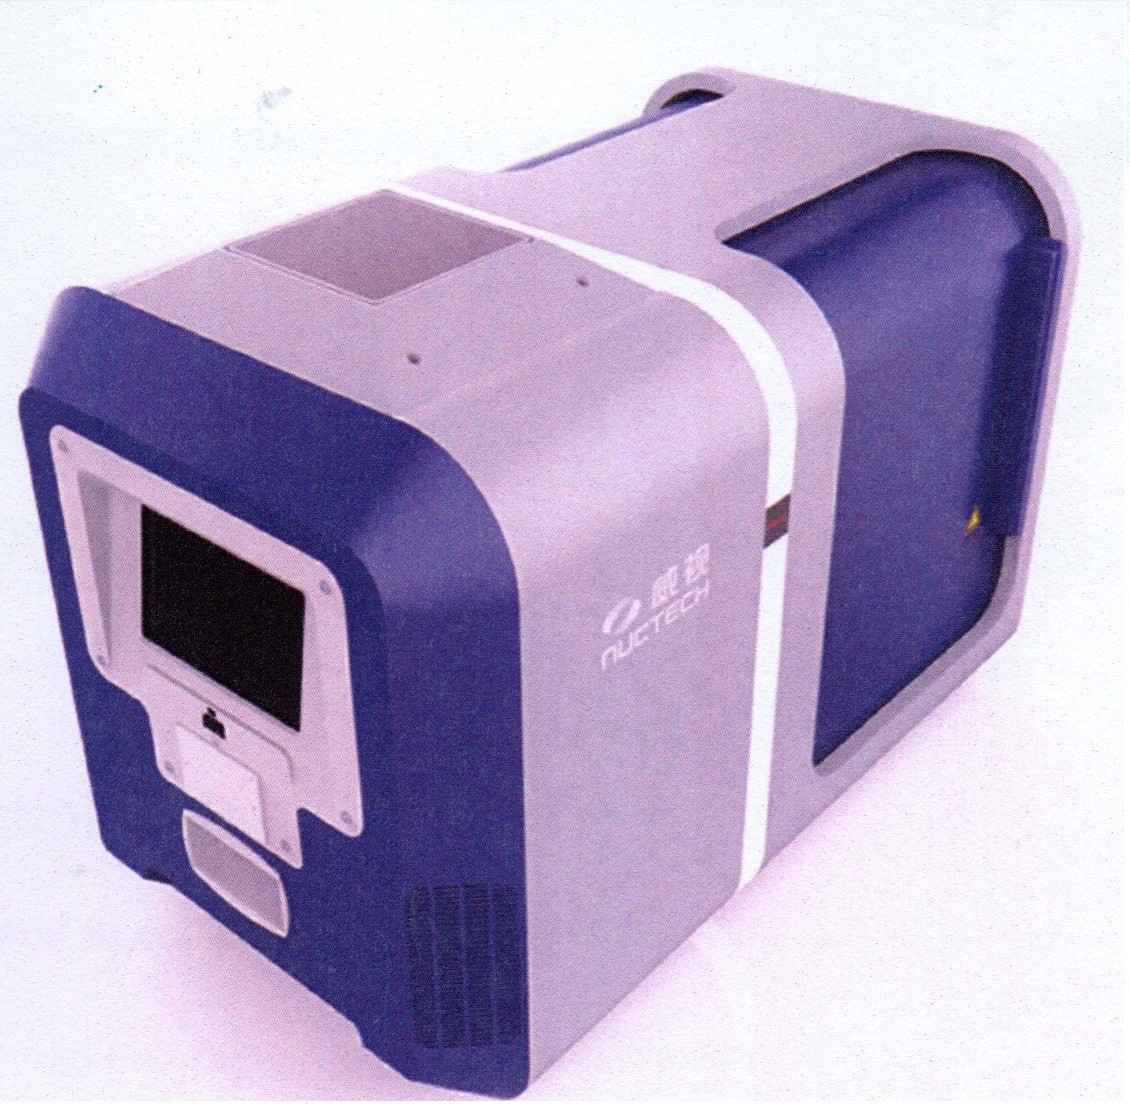 Explosive-and-Narcotice-Trace-Detector